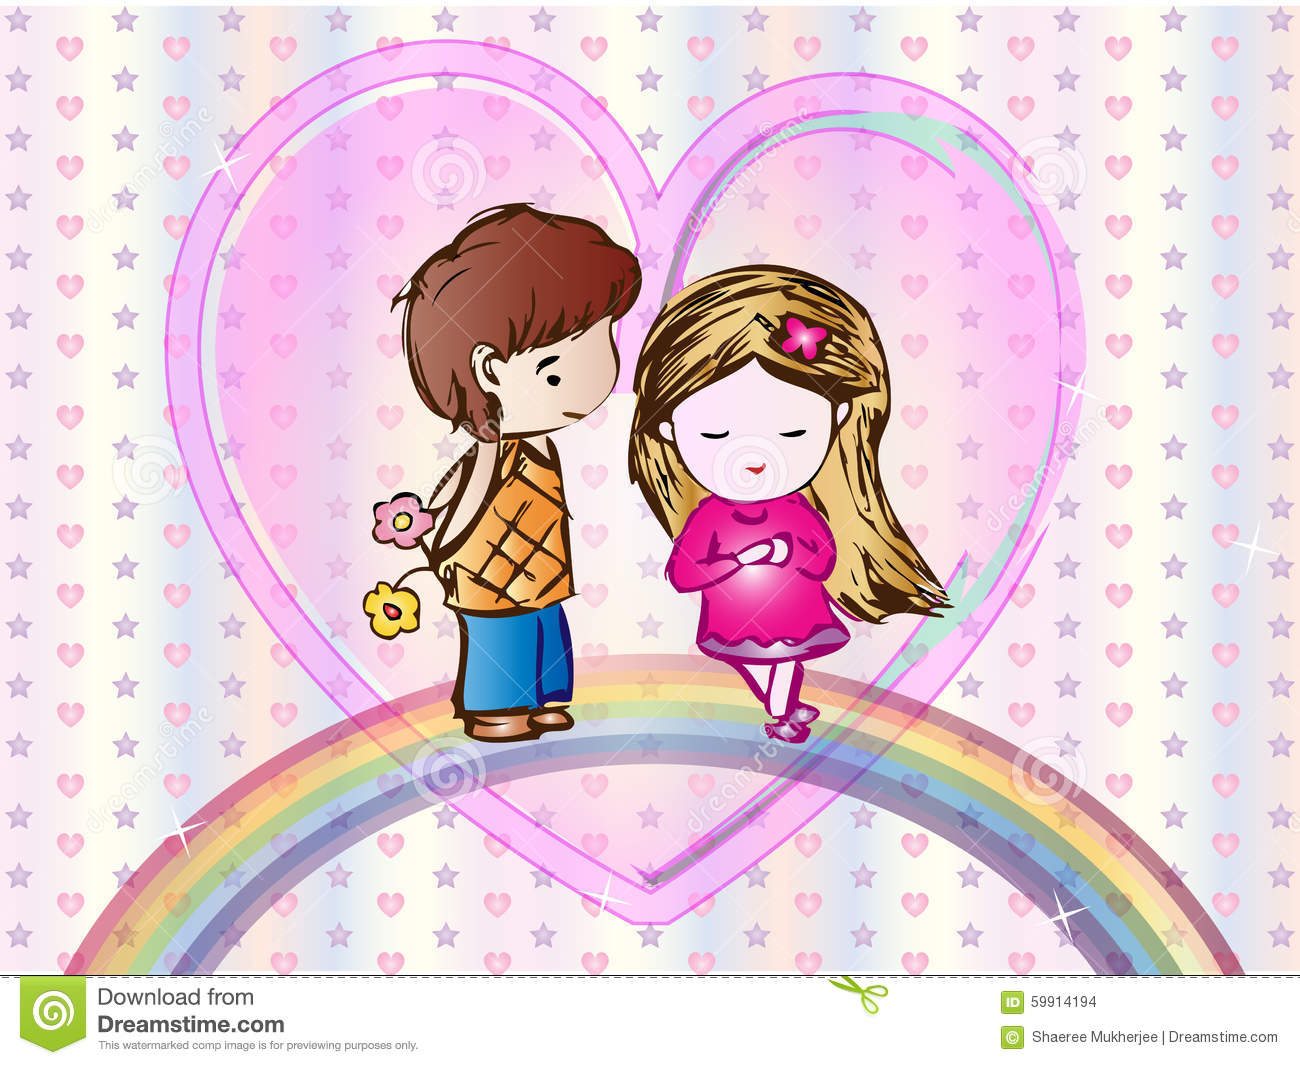 Love Boy cartoon Wallpaper : cute Love cartoon Wallpaper Stock Vector - Image: 59914194